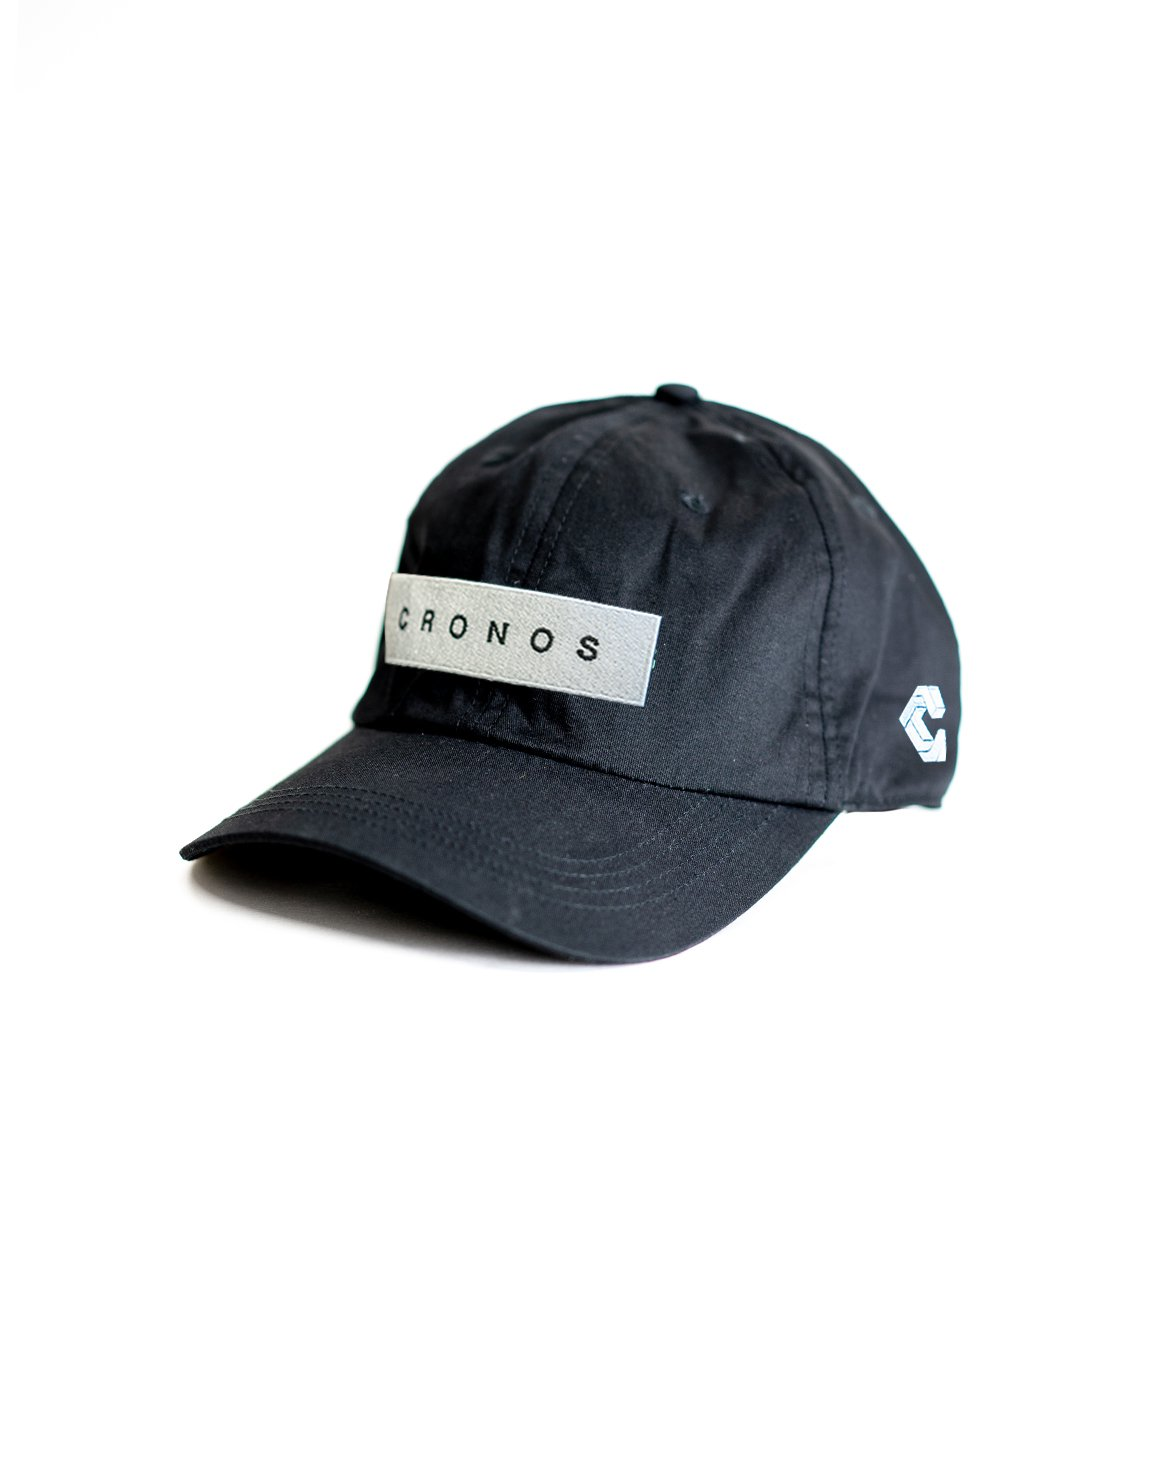 <img class='new_mark_img1' src='https://img.shop-pro.jp/img/new/icons1.gif' style='border:none;display:inline;margin:0px;padding:0px;width:auto;' />CRONOS BOX LOGO CAP 【BLACK】